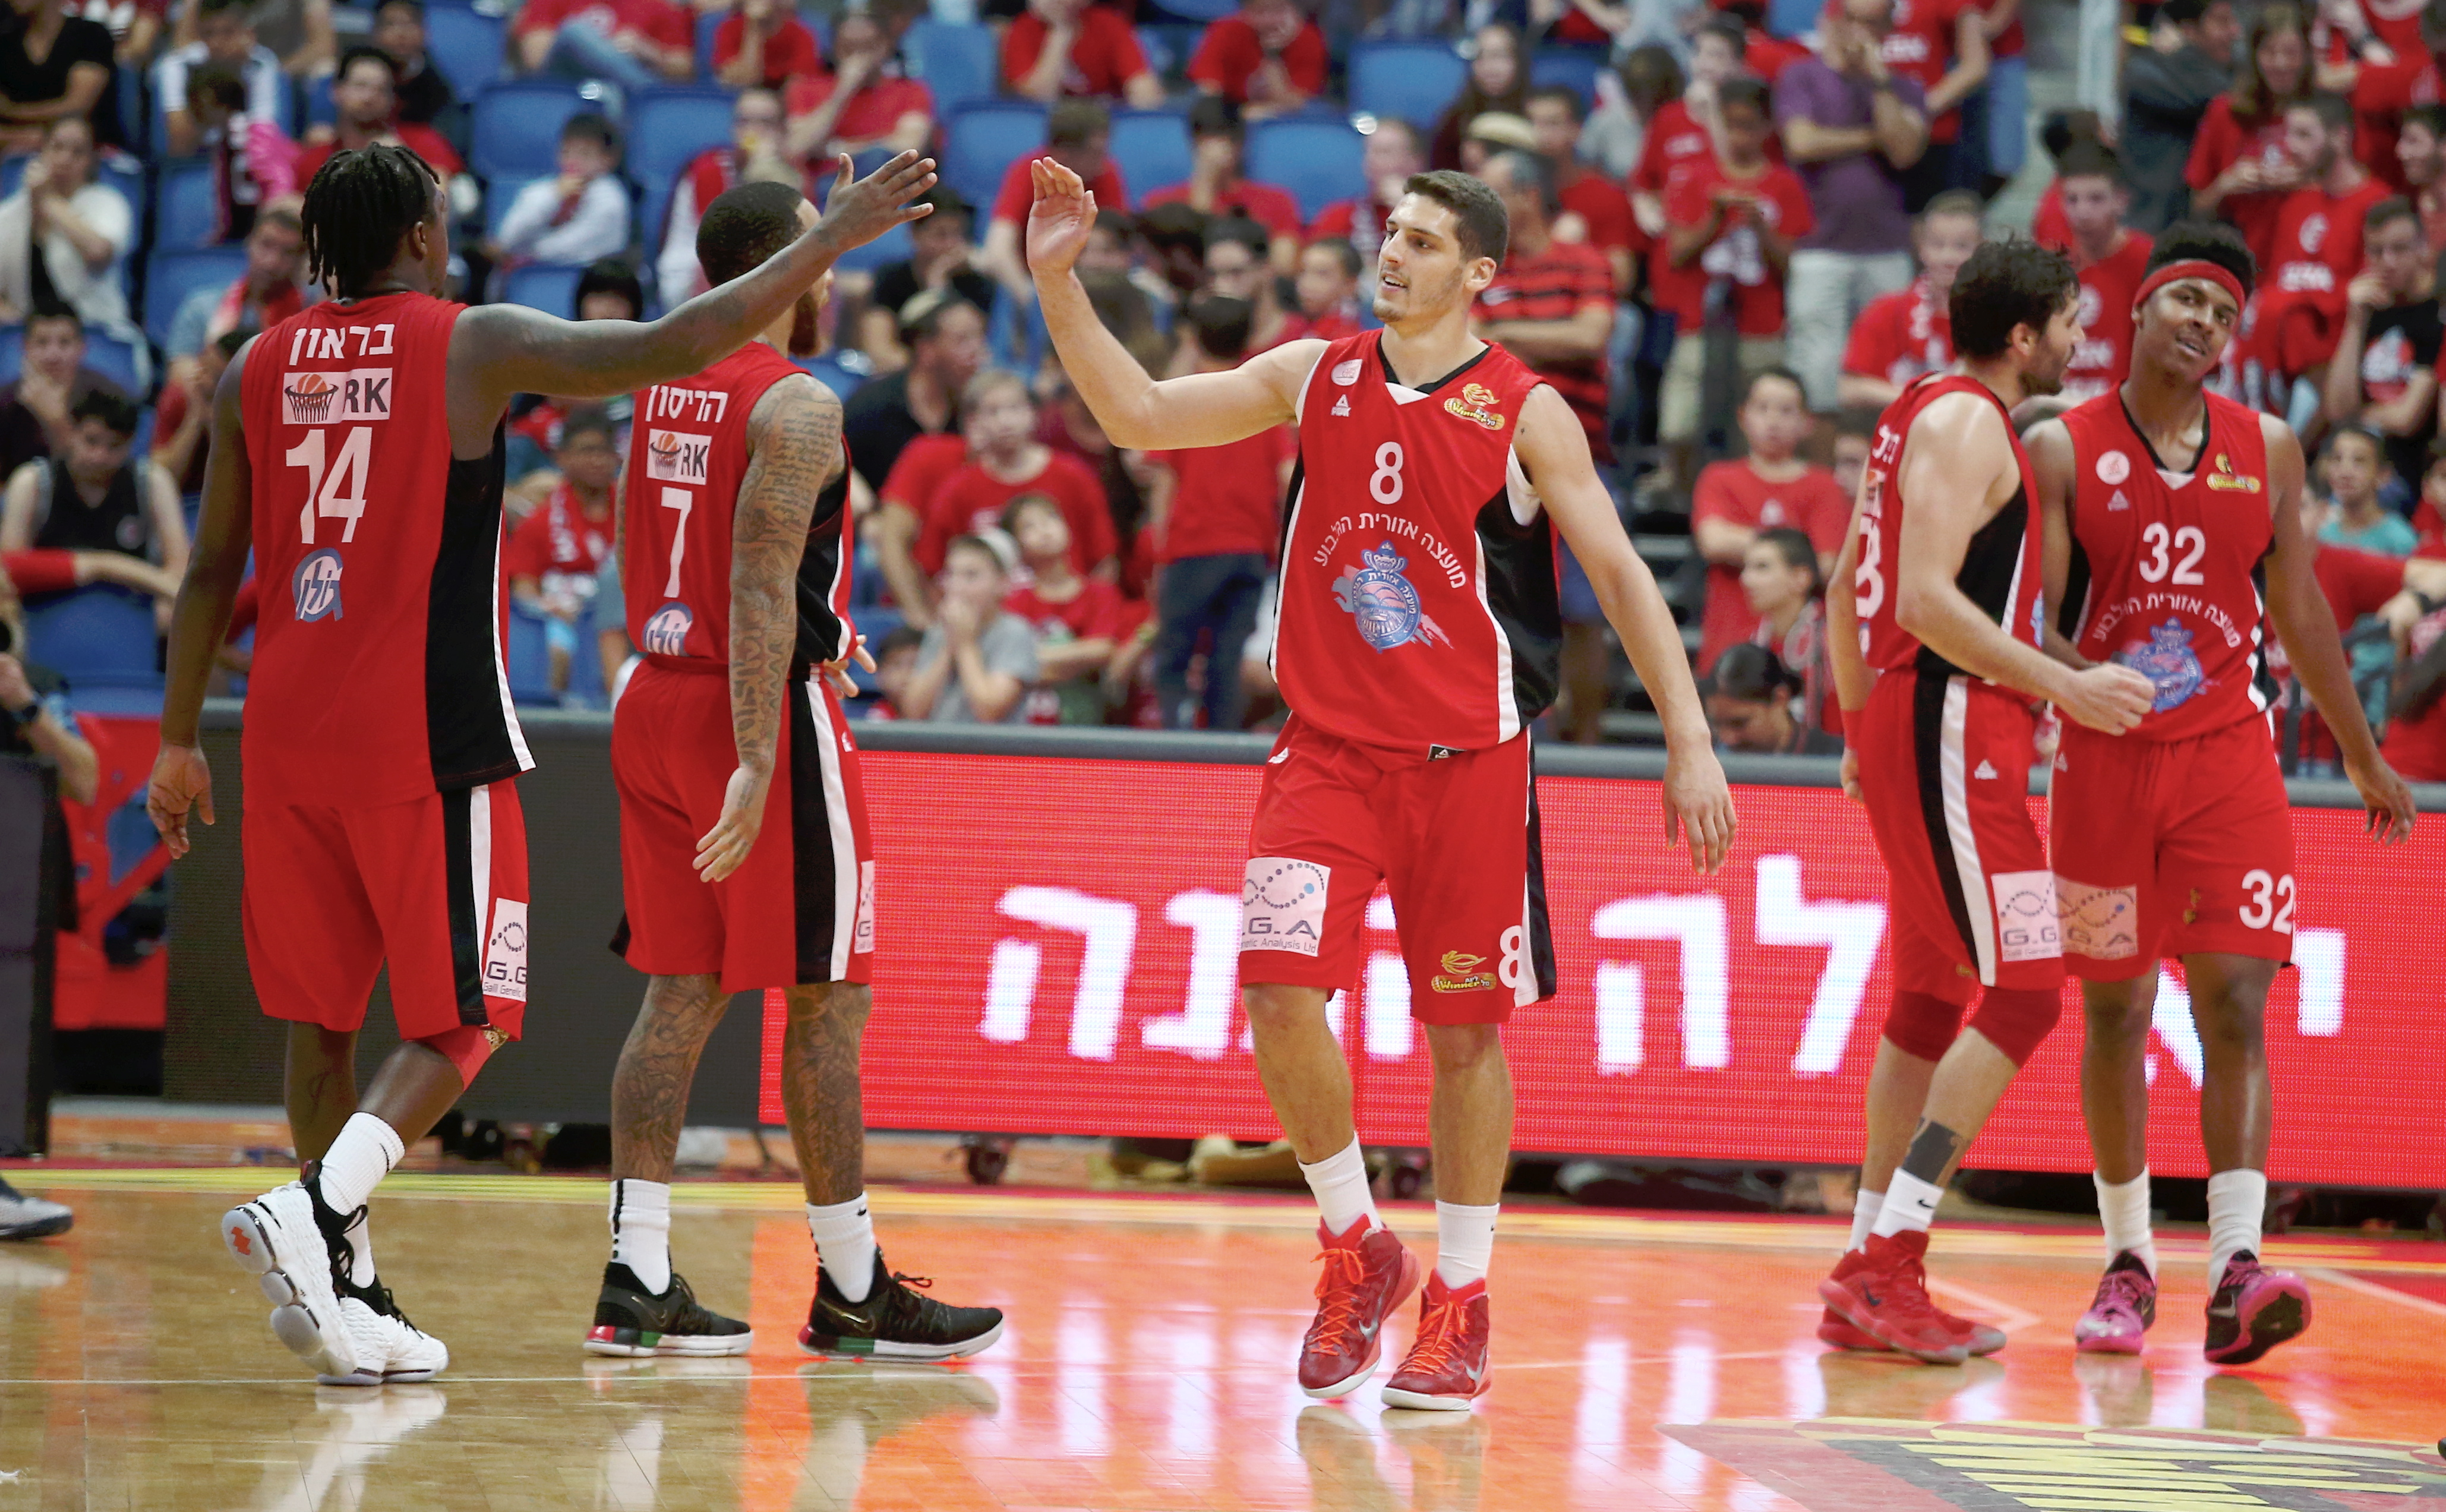 1/4 Finals, Game 1: Hapoel Jerusalem - ...